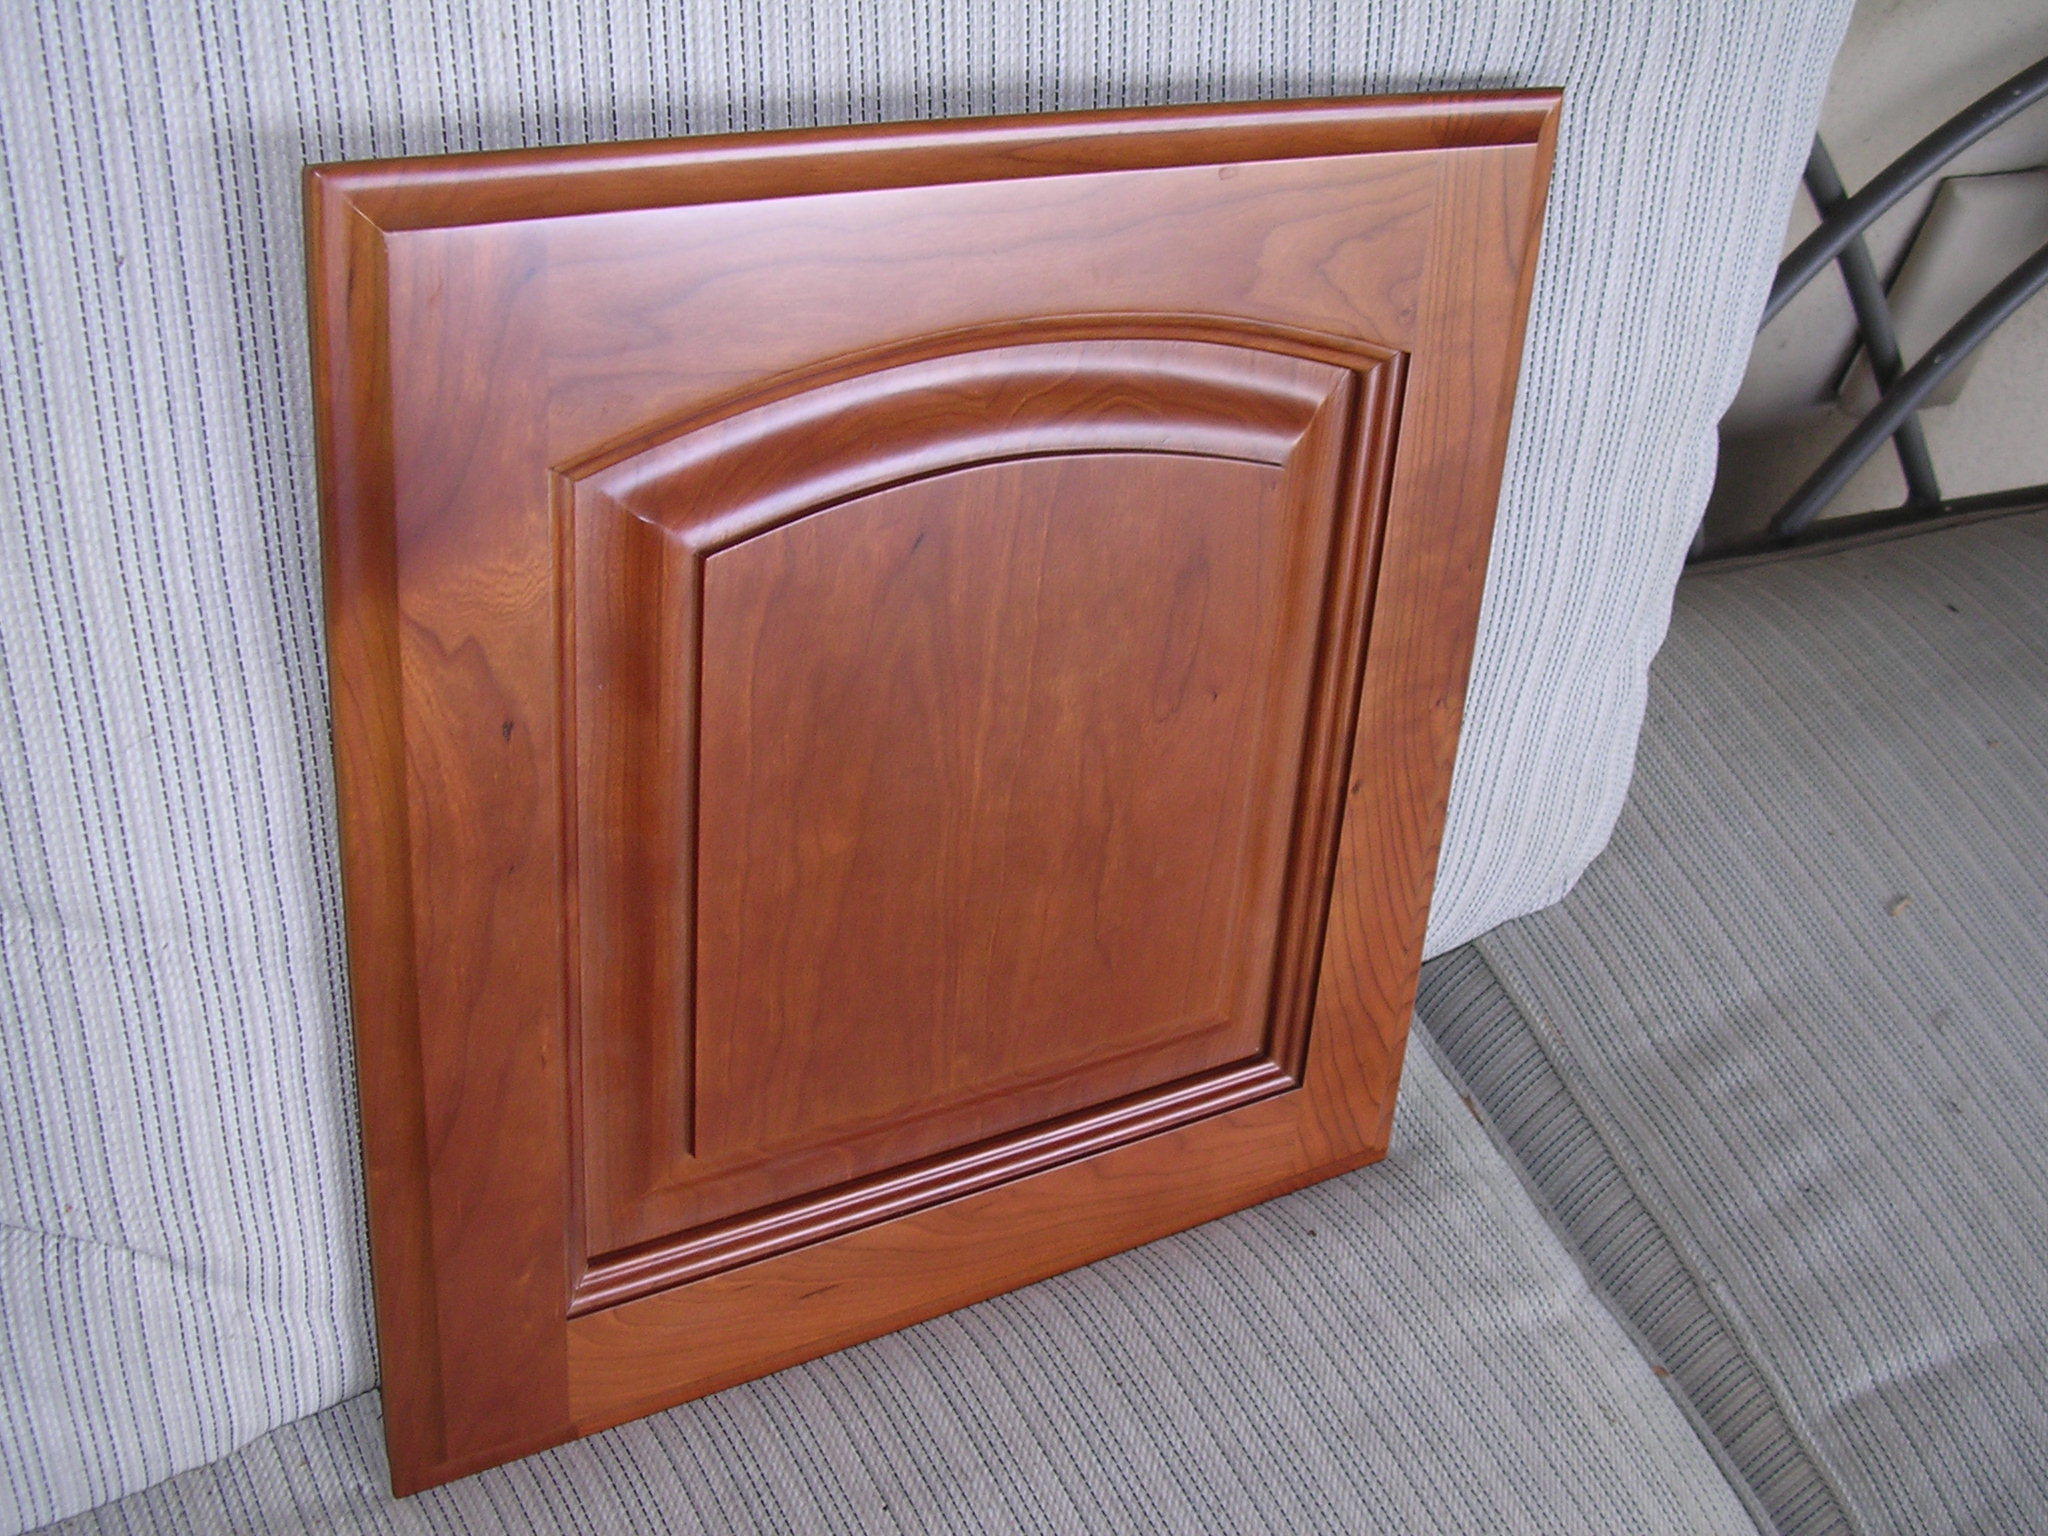 Rta Cabinet Broker 5c Natural American Cherry Arched